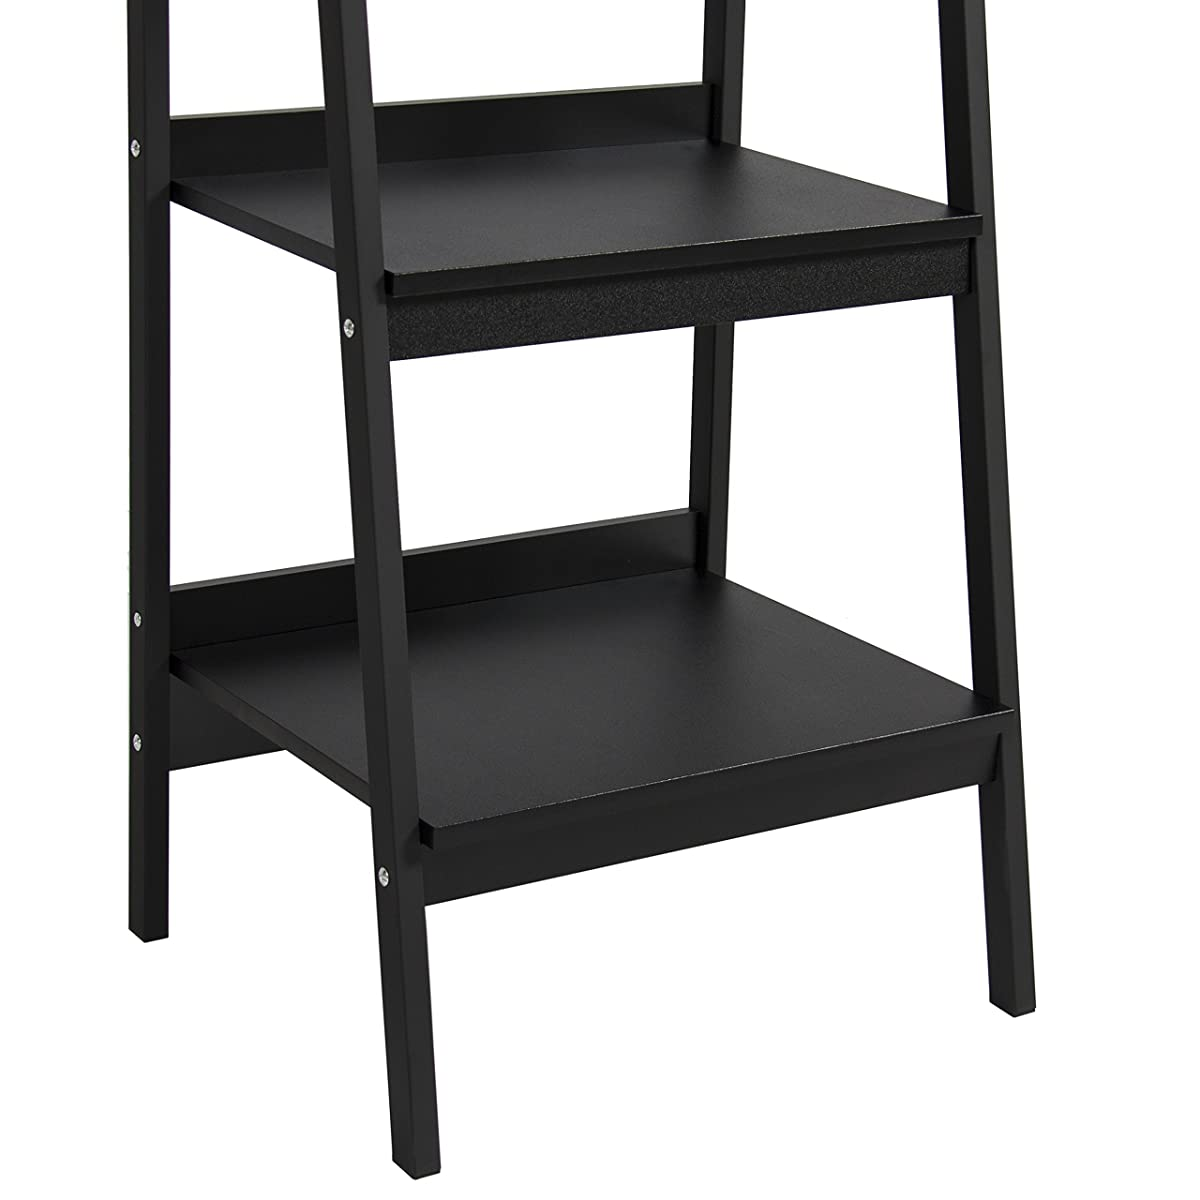 Best Choice Products Set of 2 4-Shelf Modern Open Wooden Ladder Bookcase Storage Display Organizer Decor w/ Metal Framing - Black